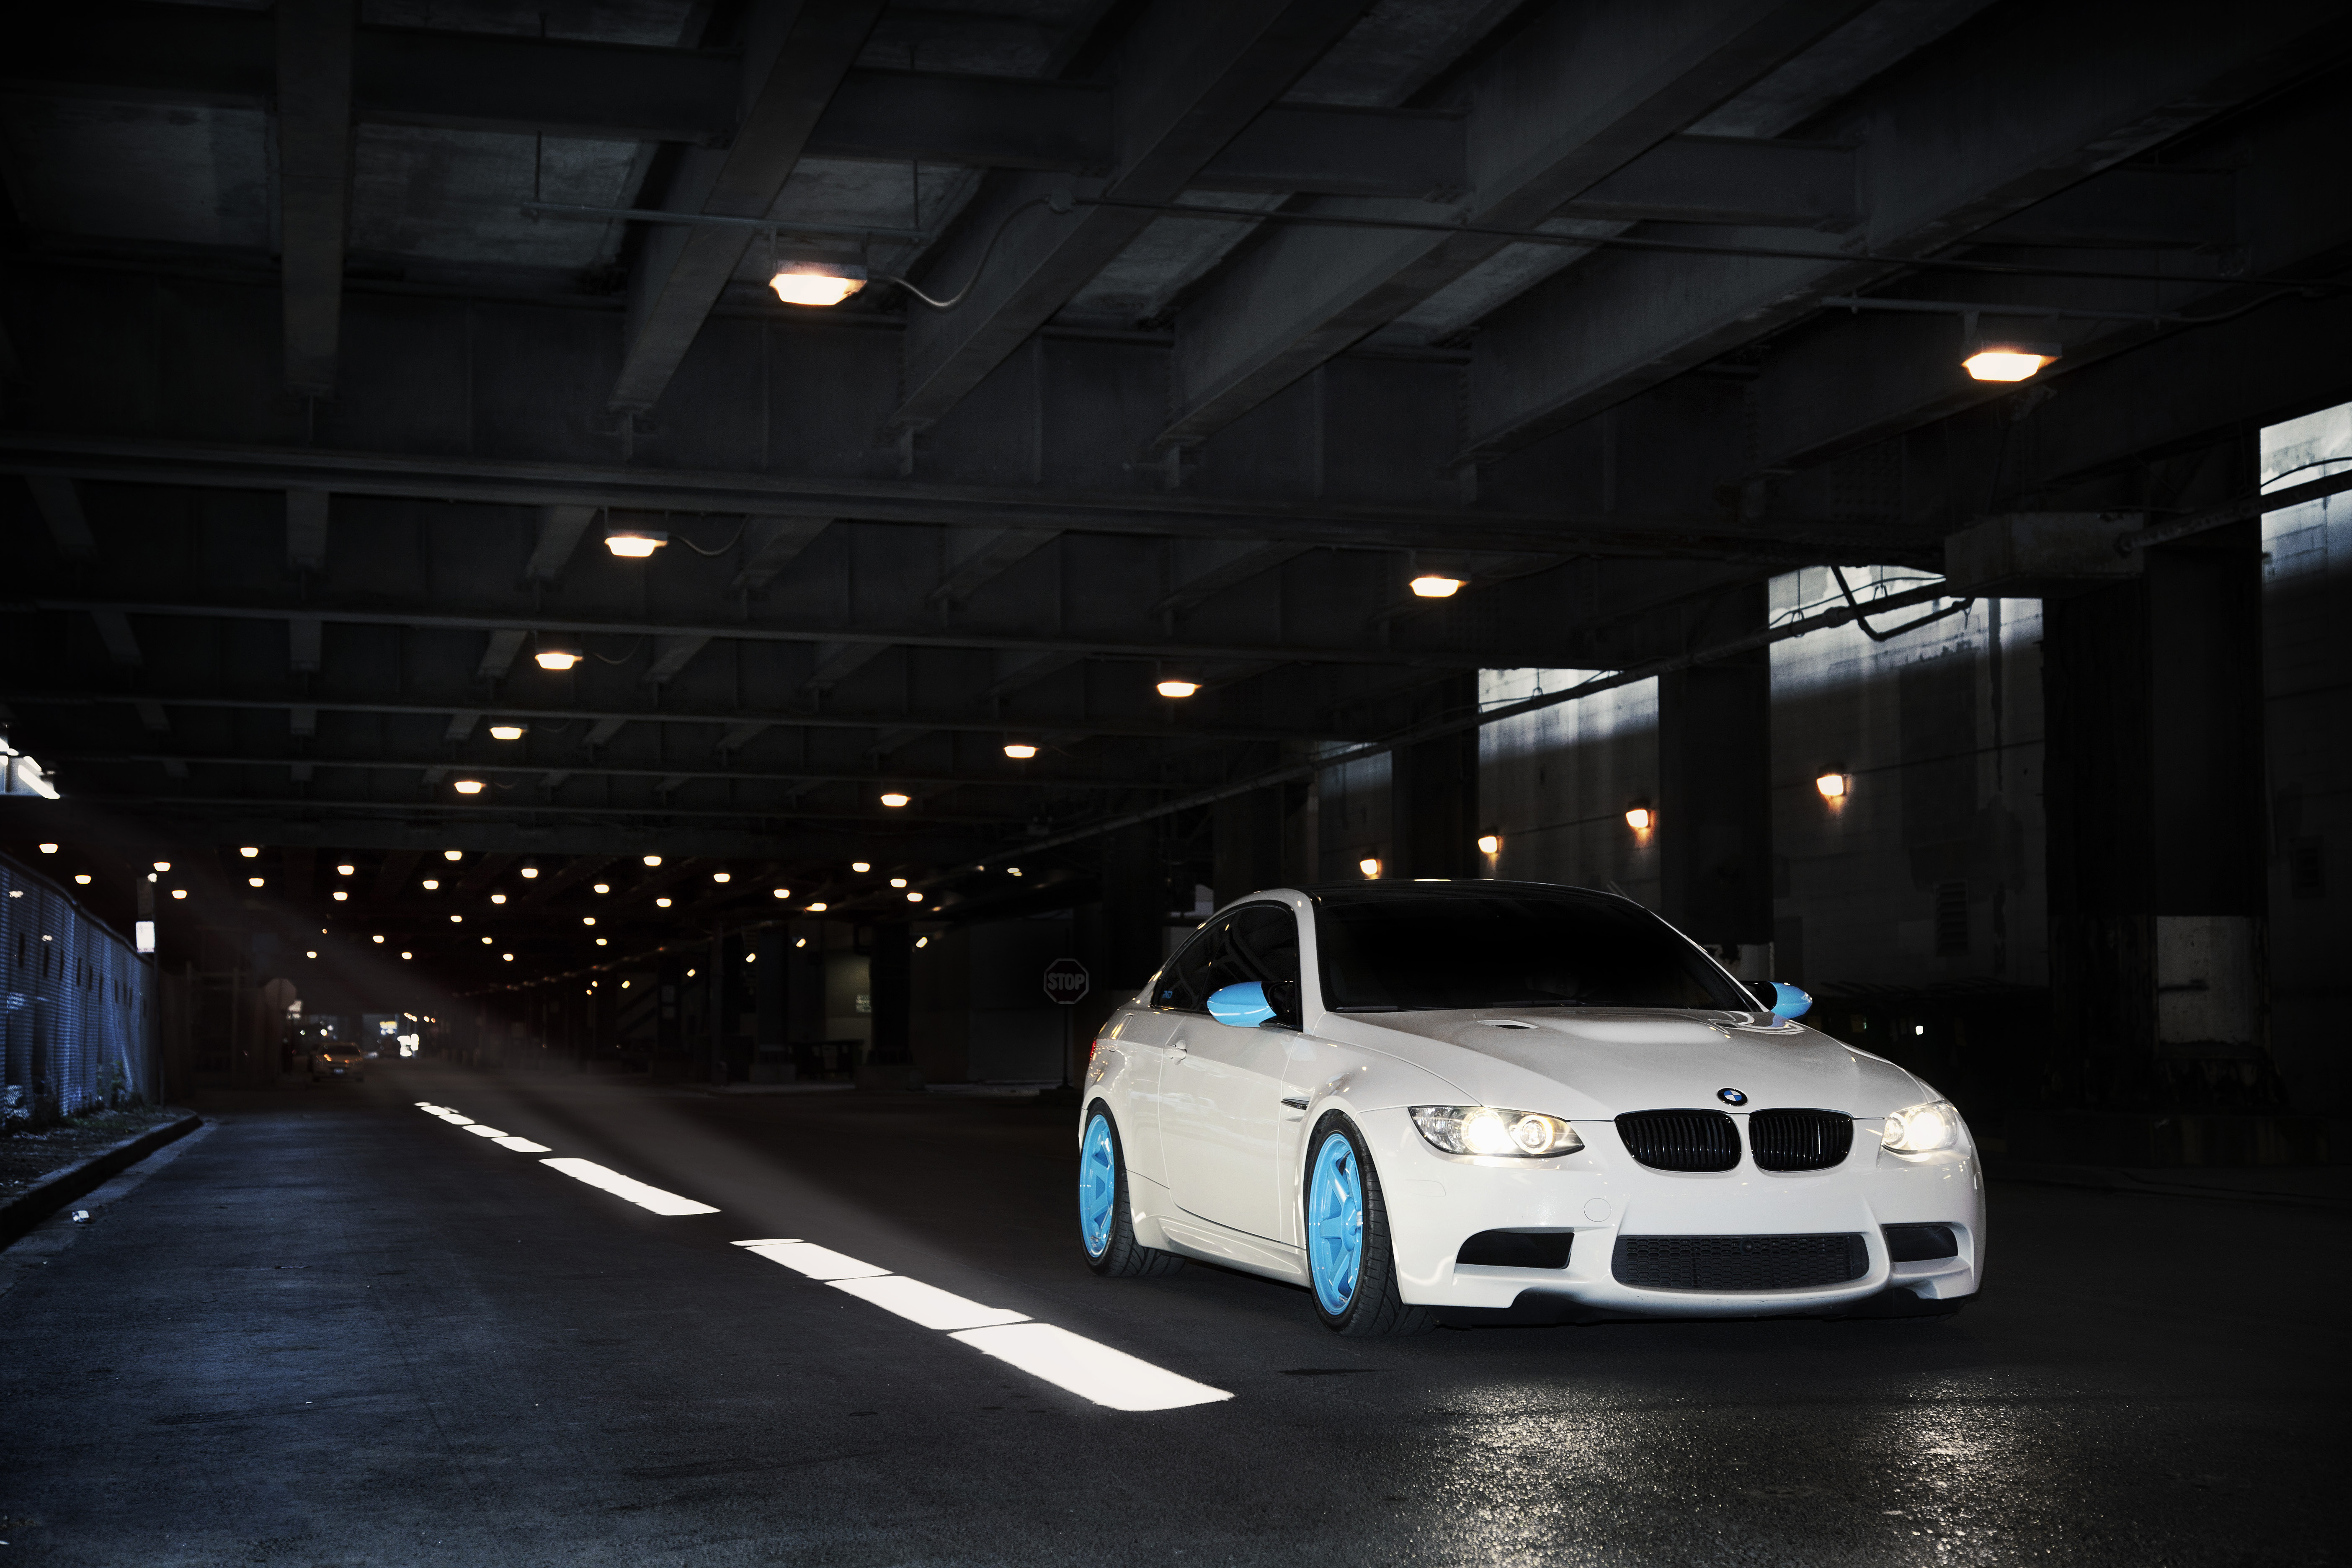 4K Wallpaper   Cars   White, BMW, M3, IND, Tunnel, E92